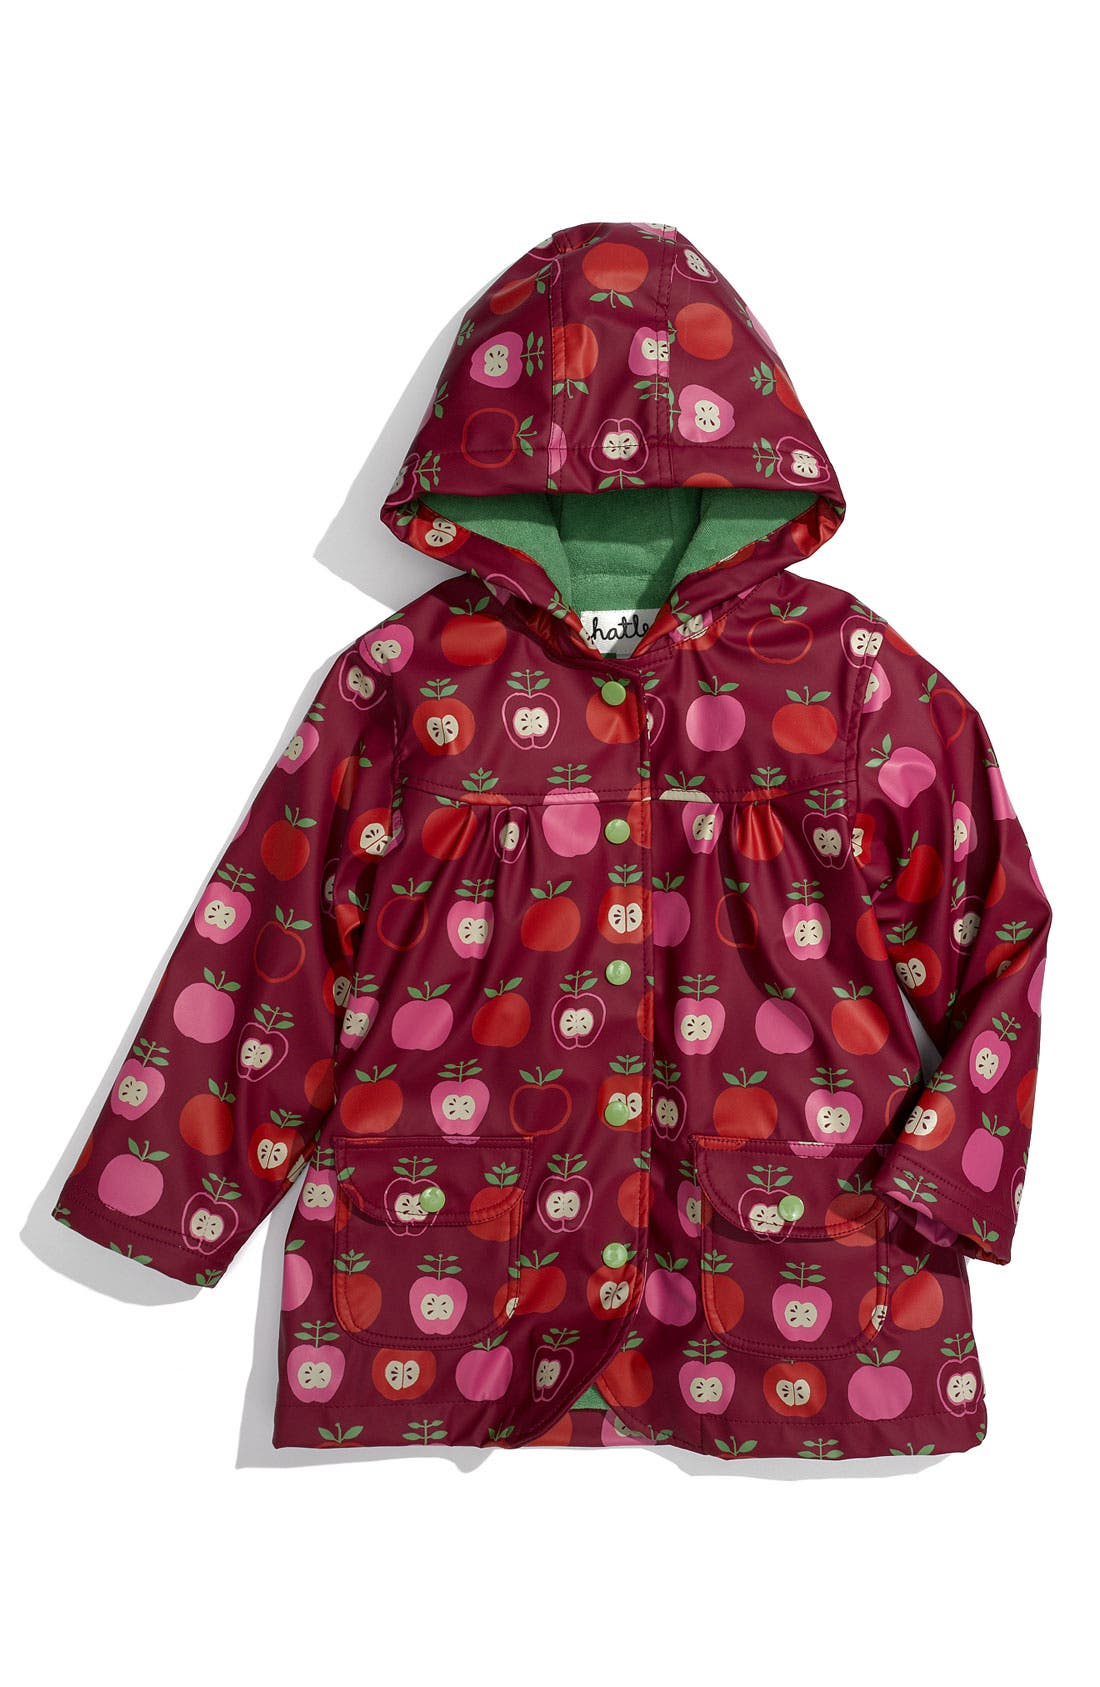 Main Image - Hatley Apple Print Raincoat (Infant, Toddler & Little Girls)